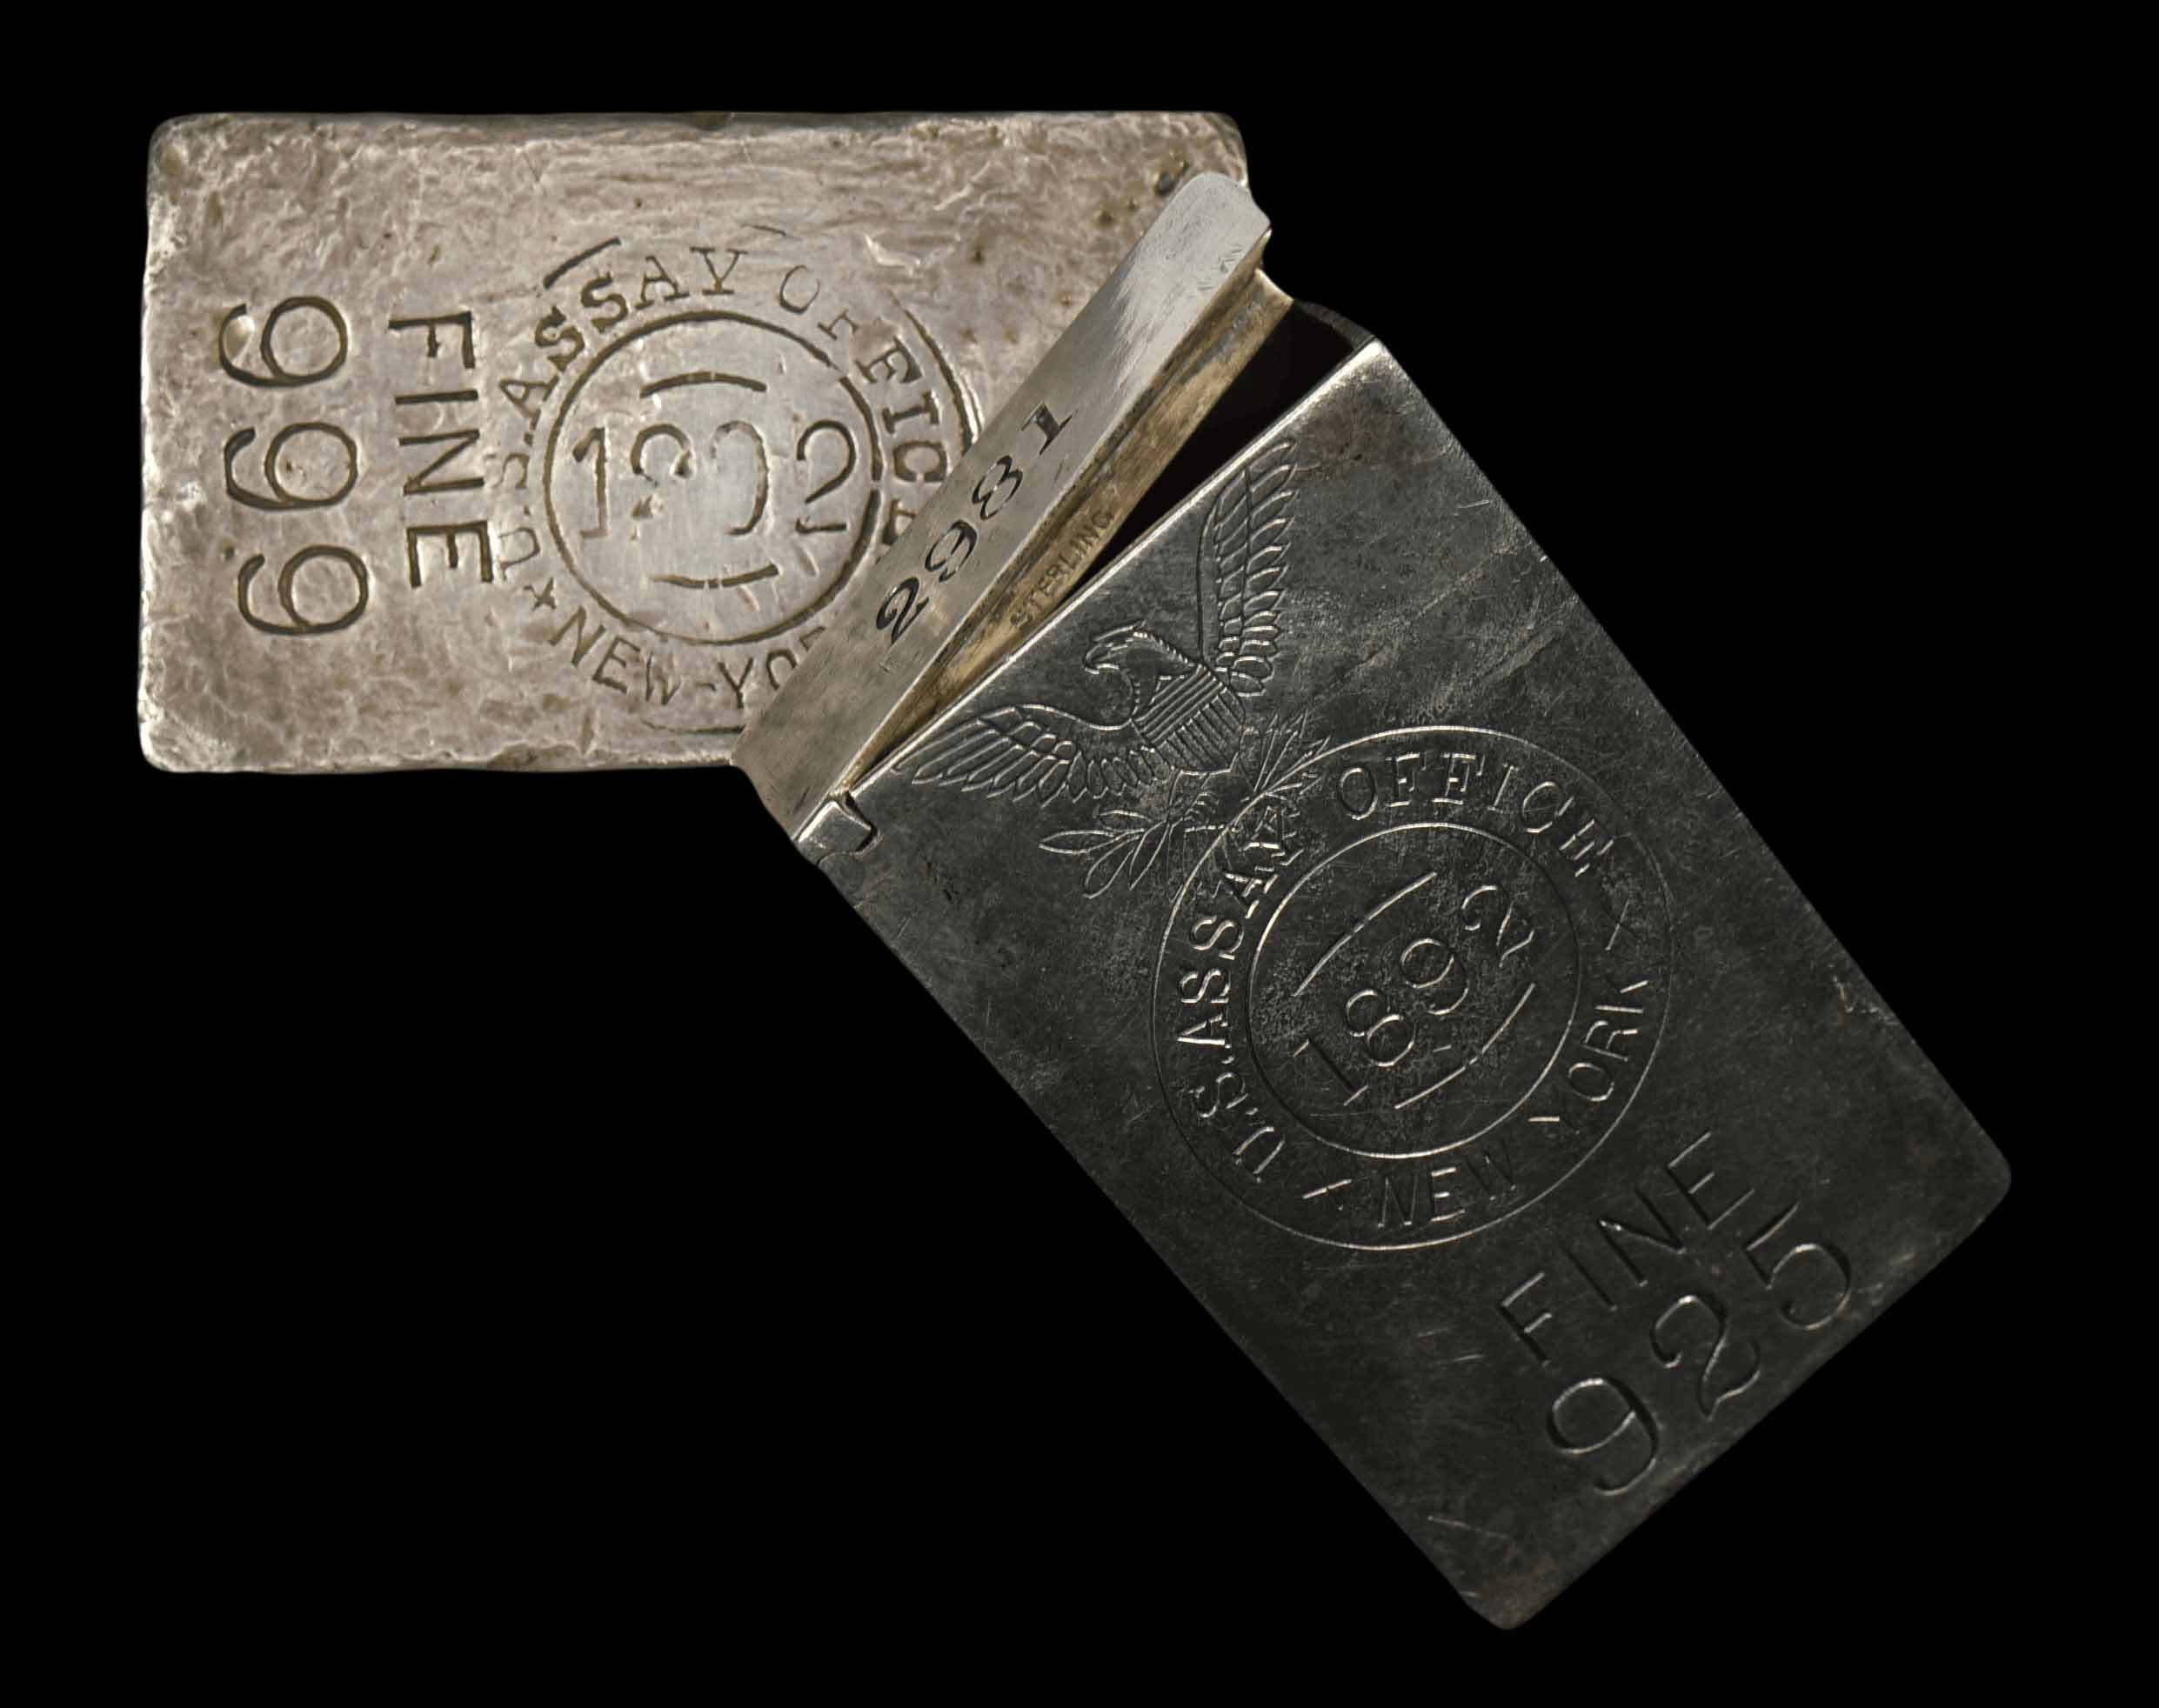 1892 New York Assay Office Silver Ingot & Antique Match Safe